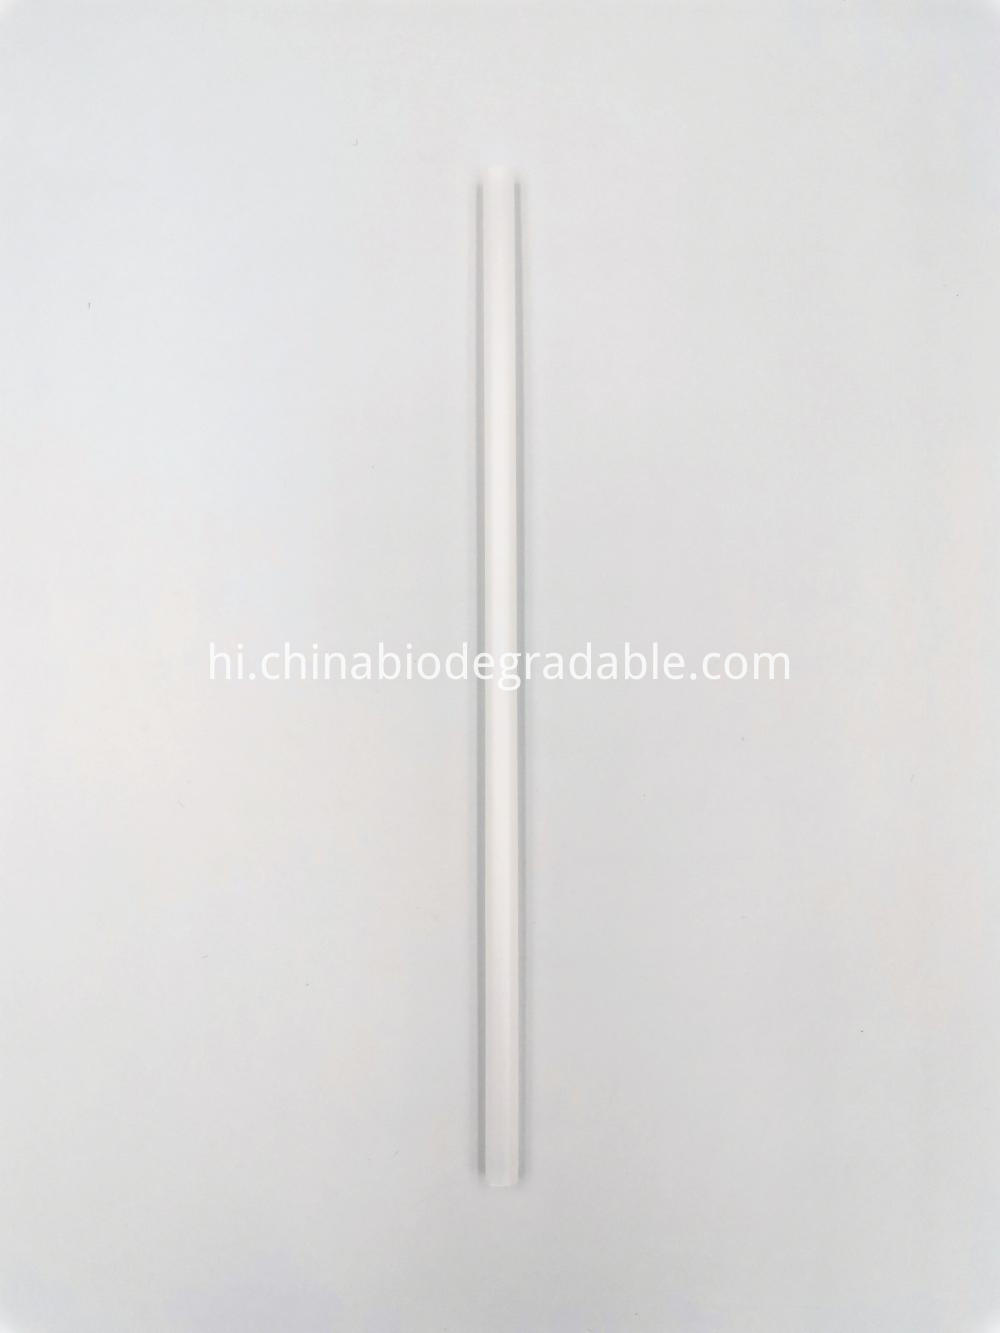 100% Biodegradable Promotion PLA Drinking Straws